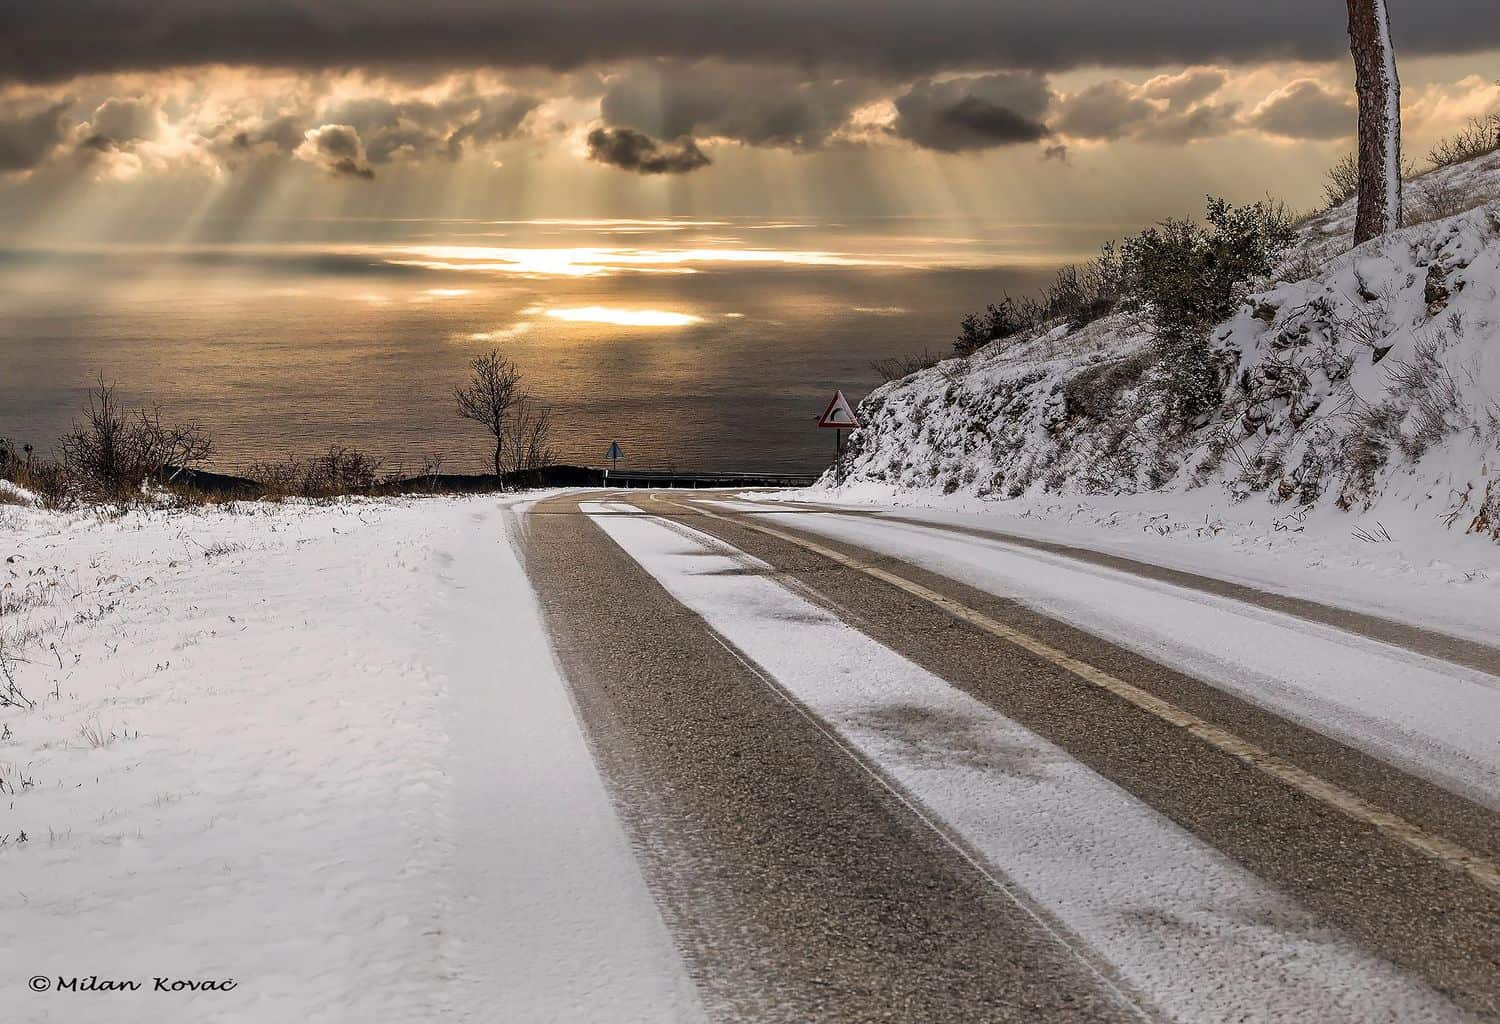 Beautiful sunset after snowy day. Konavle region, near Dubrovnik city-Croatia.